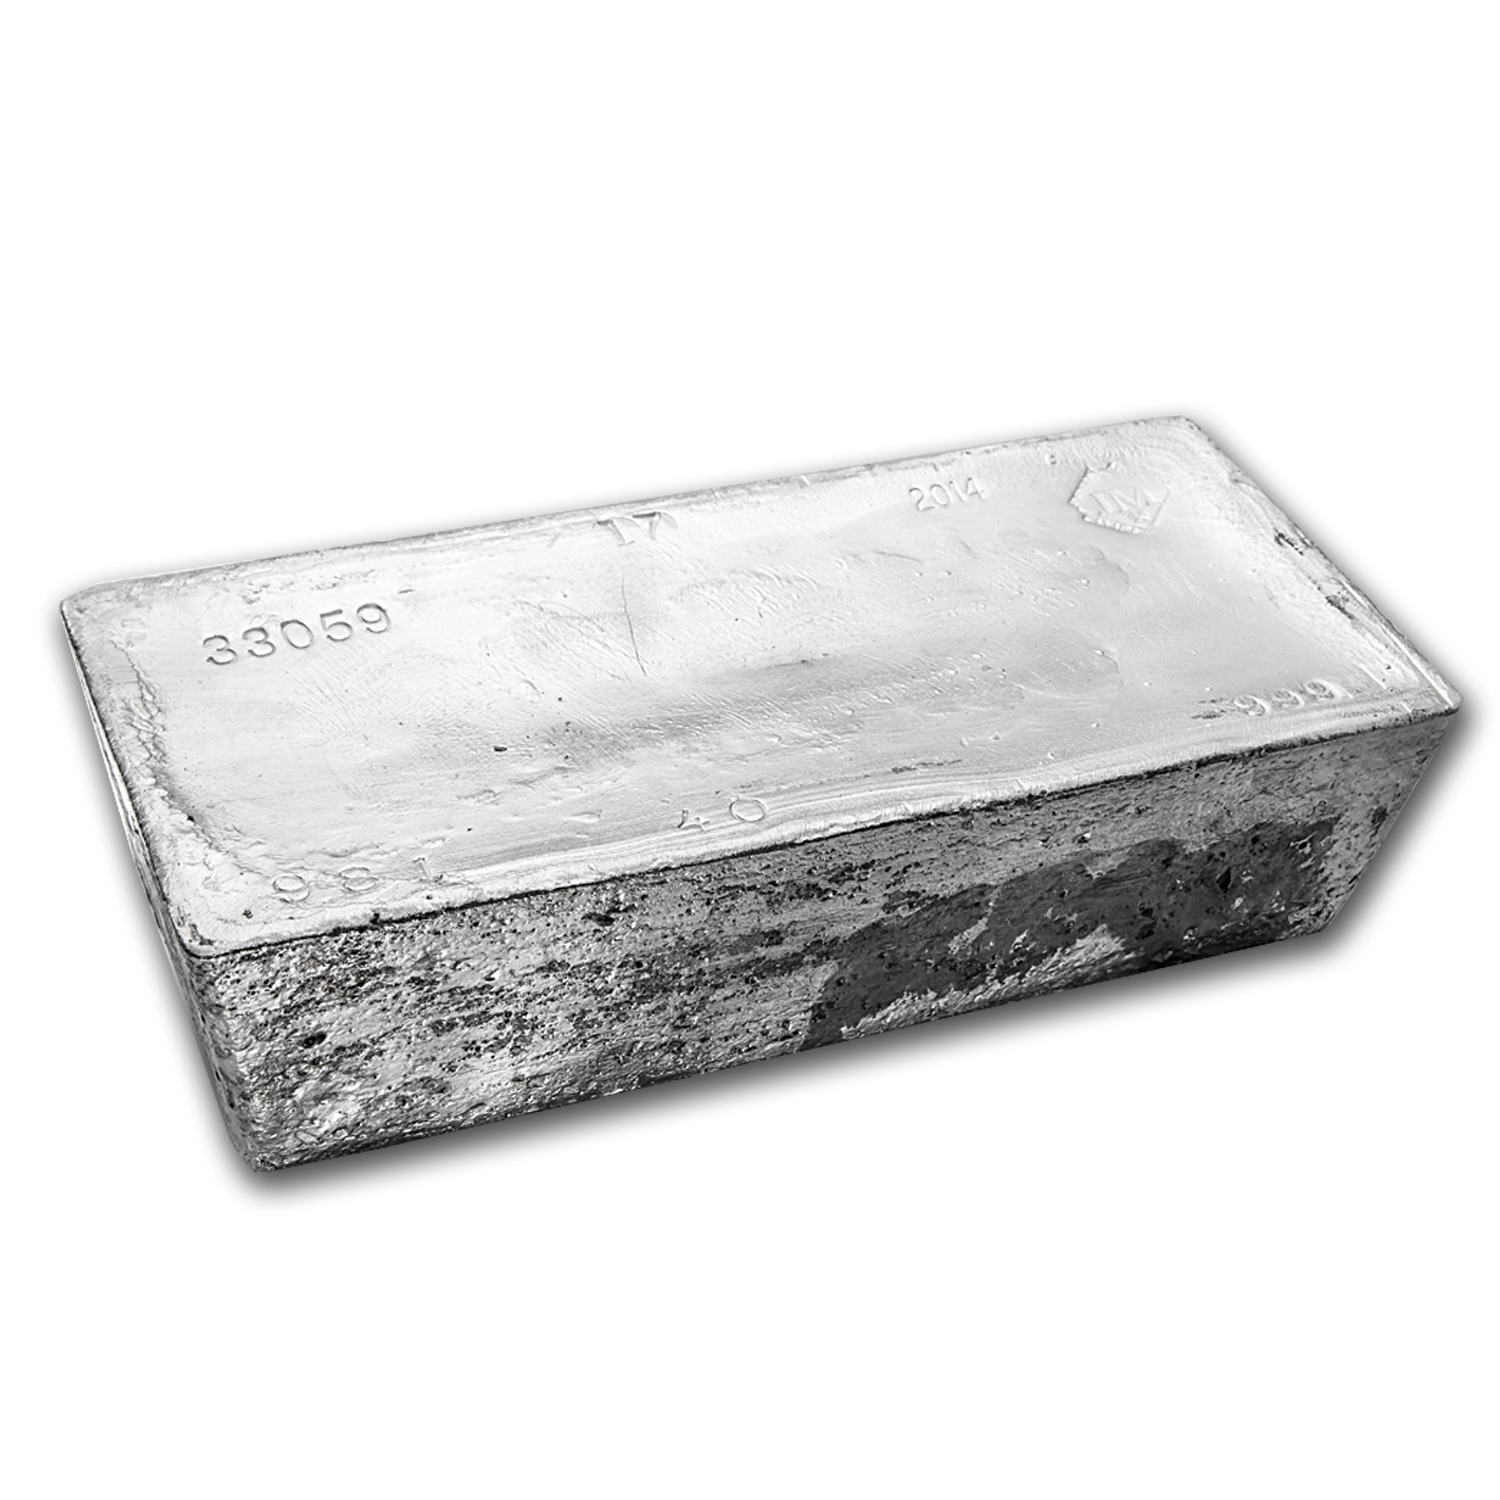 1044.30 oz Silver Bar - Johnson Matthey